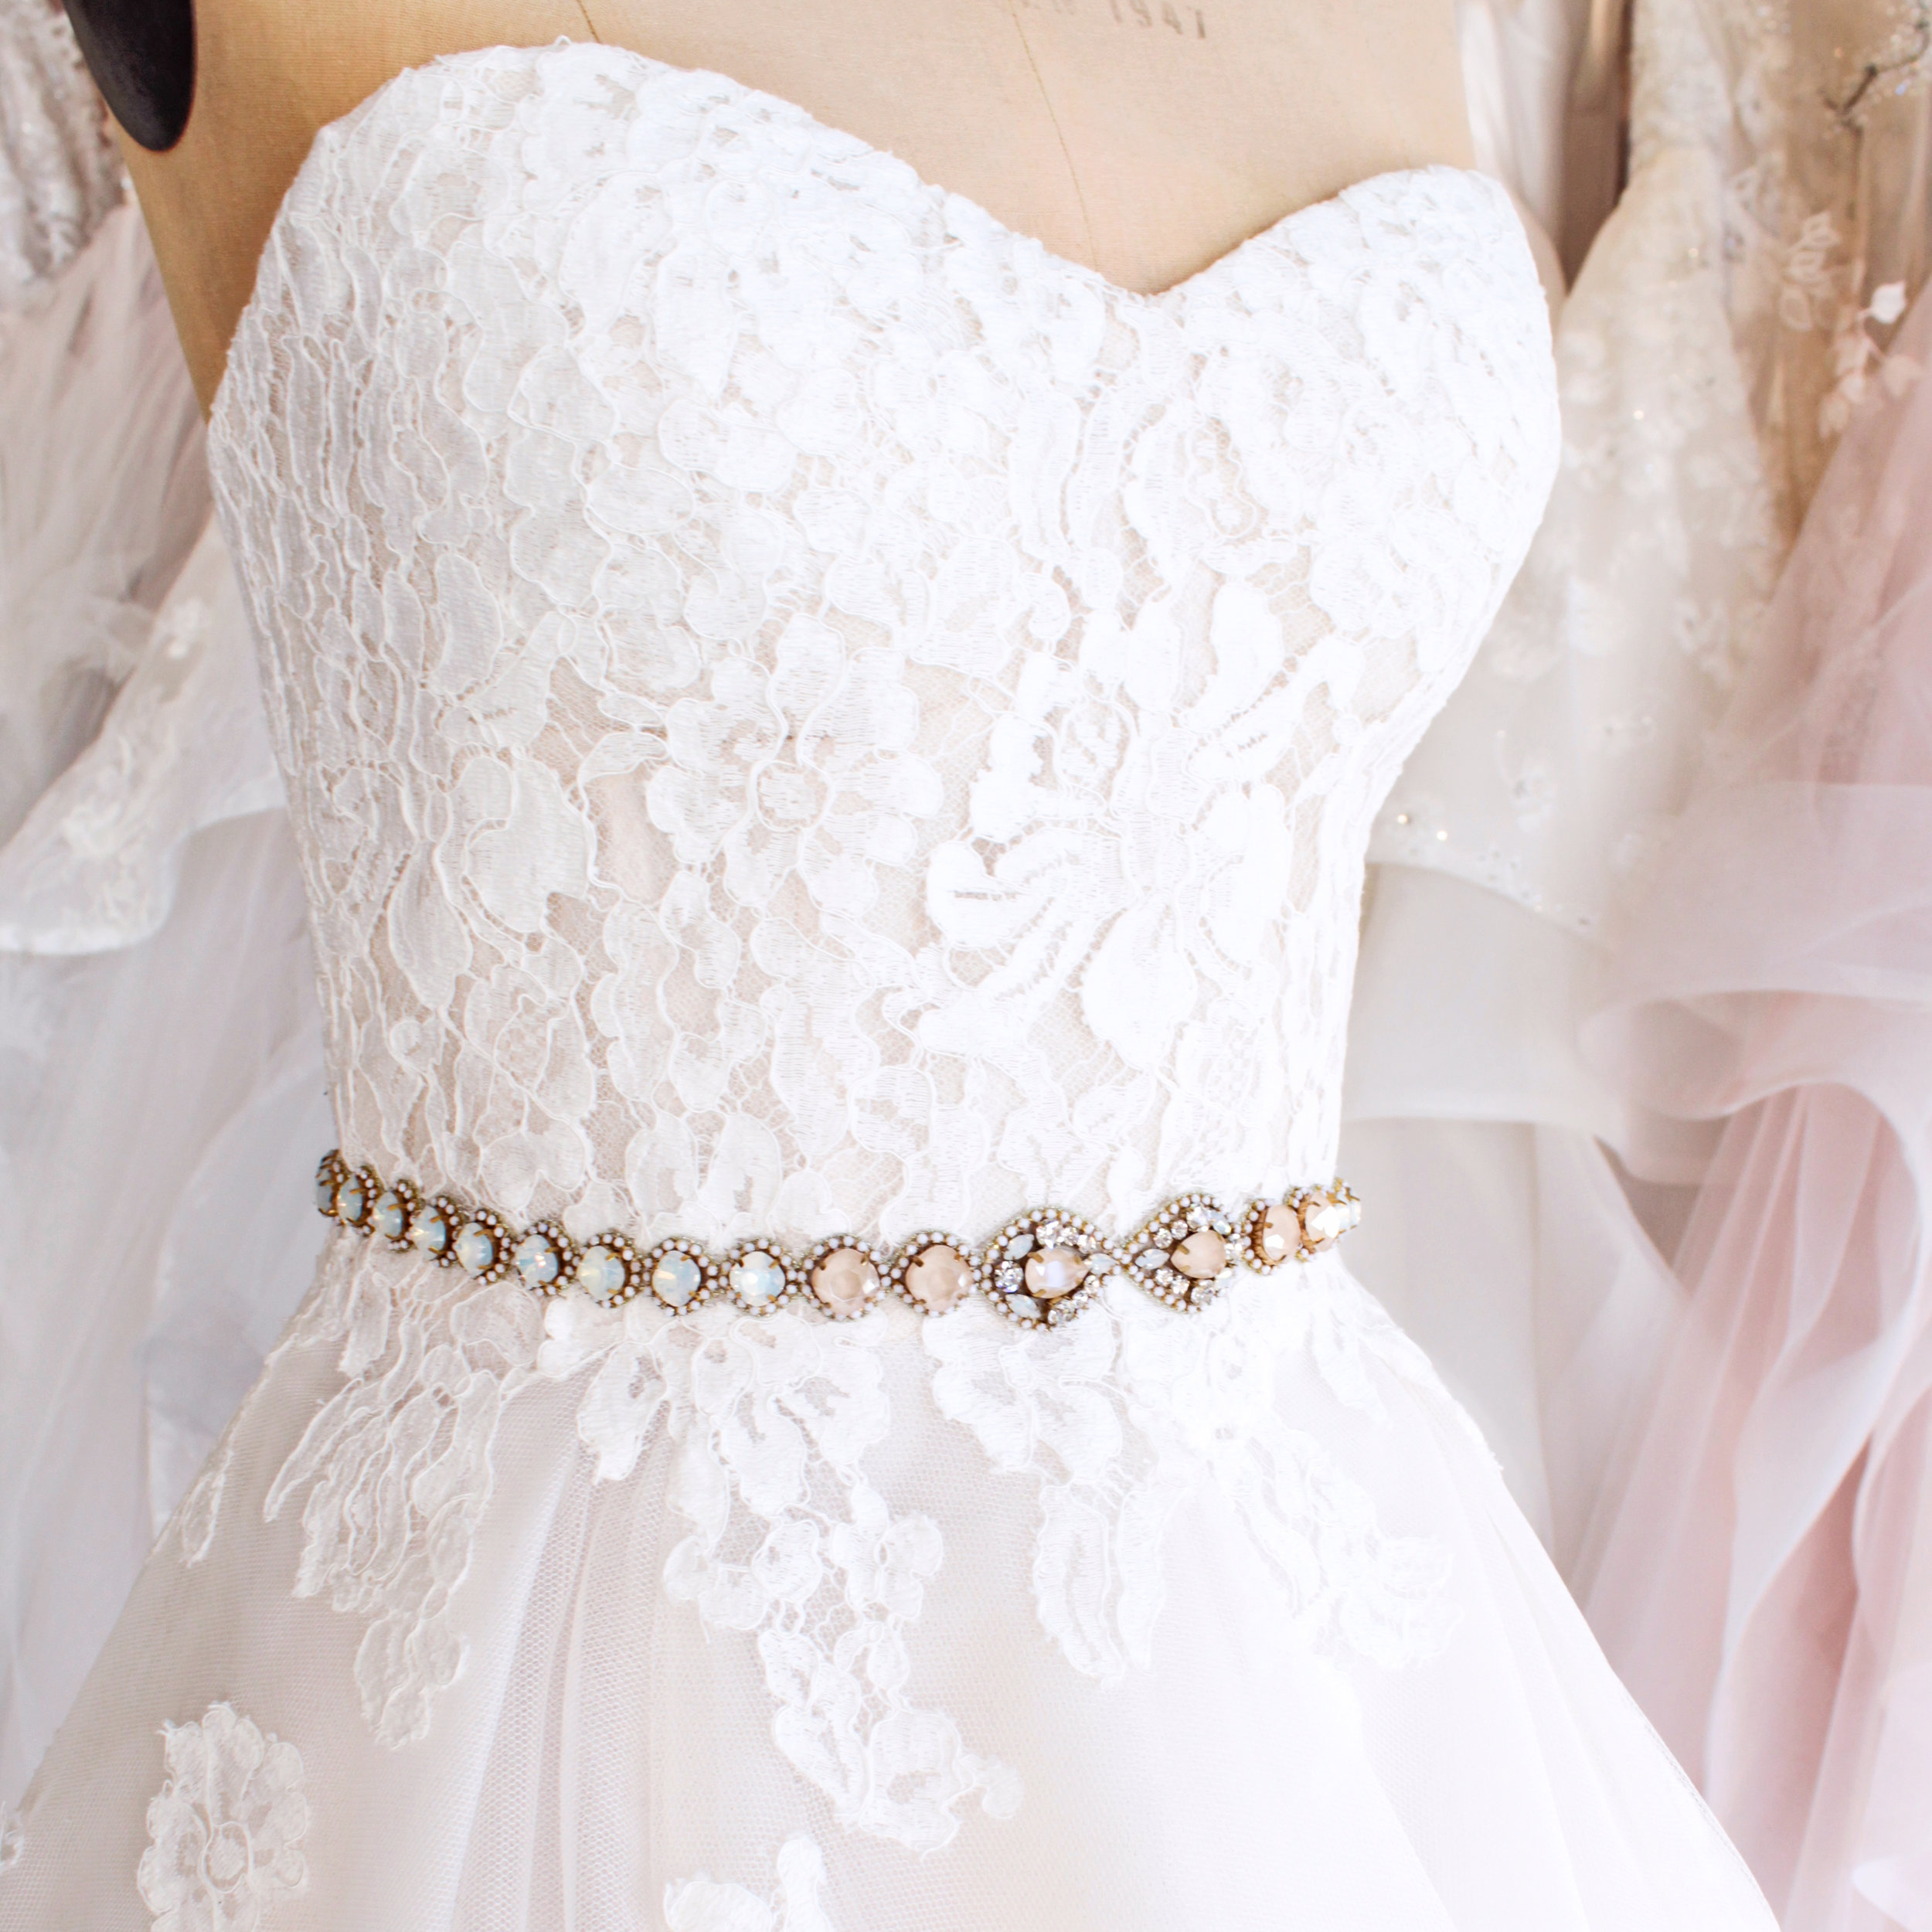 NEW Haute Bride Sashes for Spring 2019